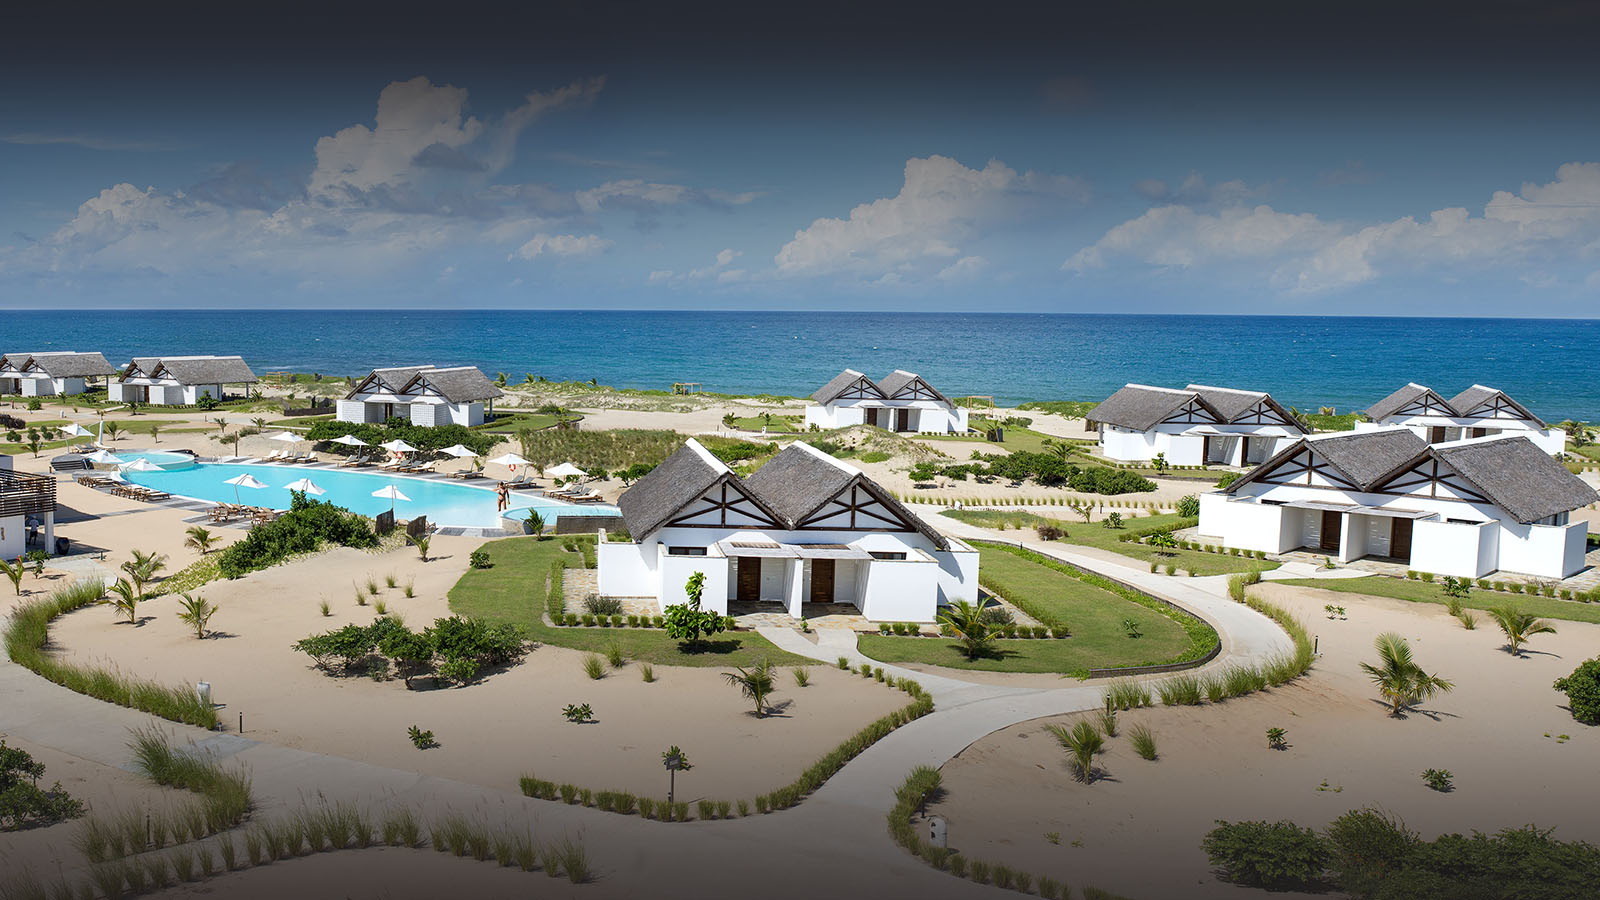 diamonds mequfi beach resort mozambique-lodges-pemba-zambia-in-style-paradise-pristine-beach-swimming-pool